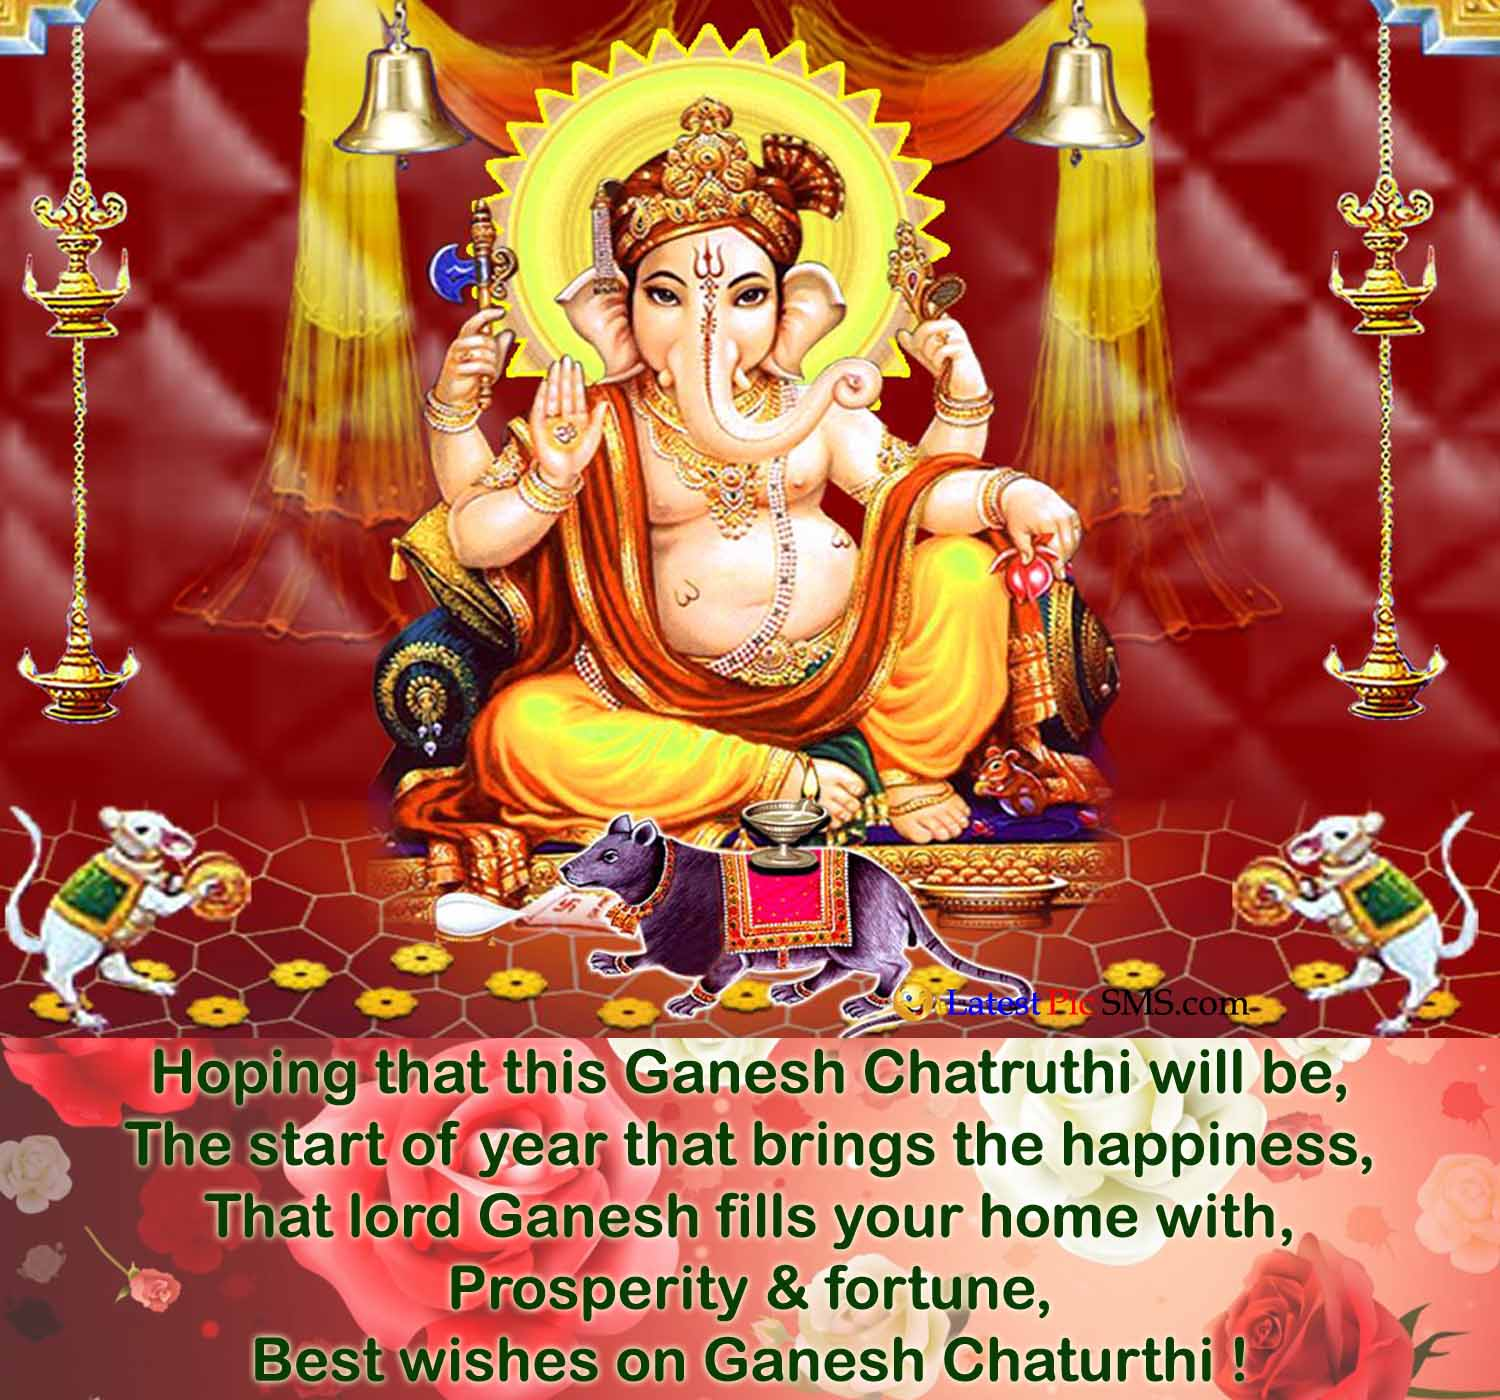 Best Wishes on Ganesh Chaturthi photo quotes